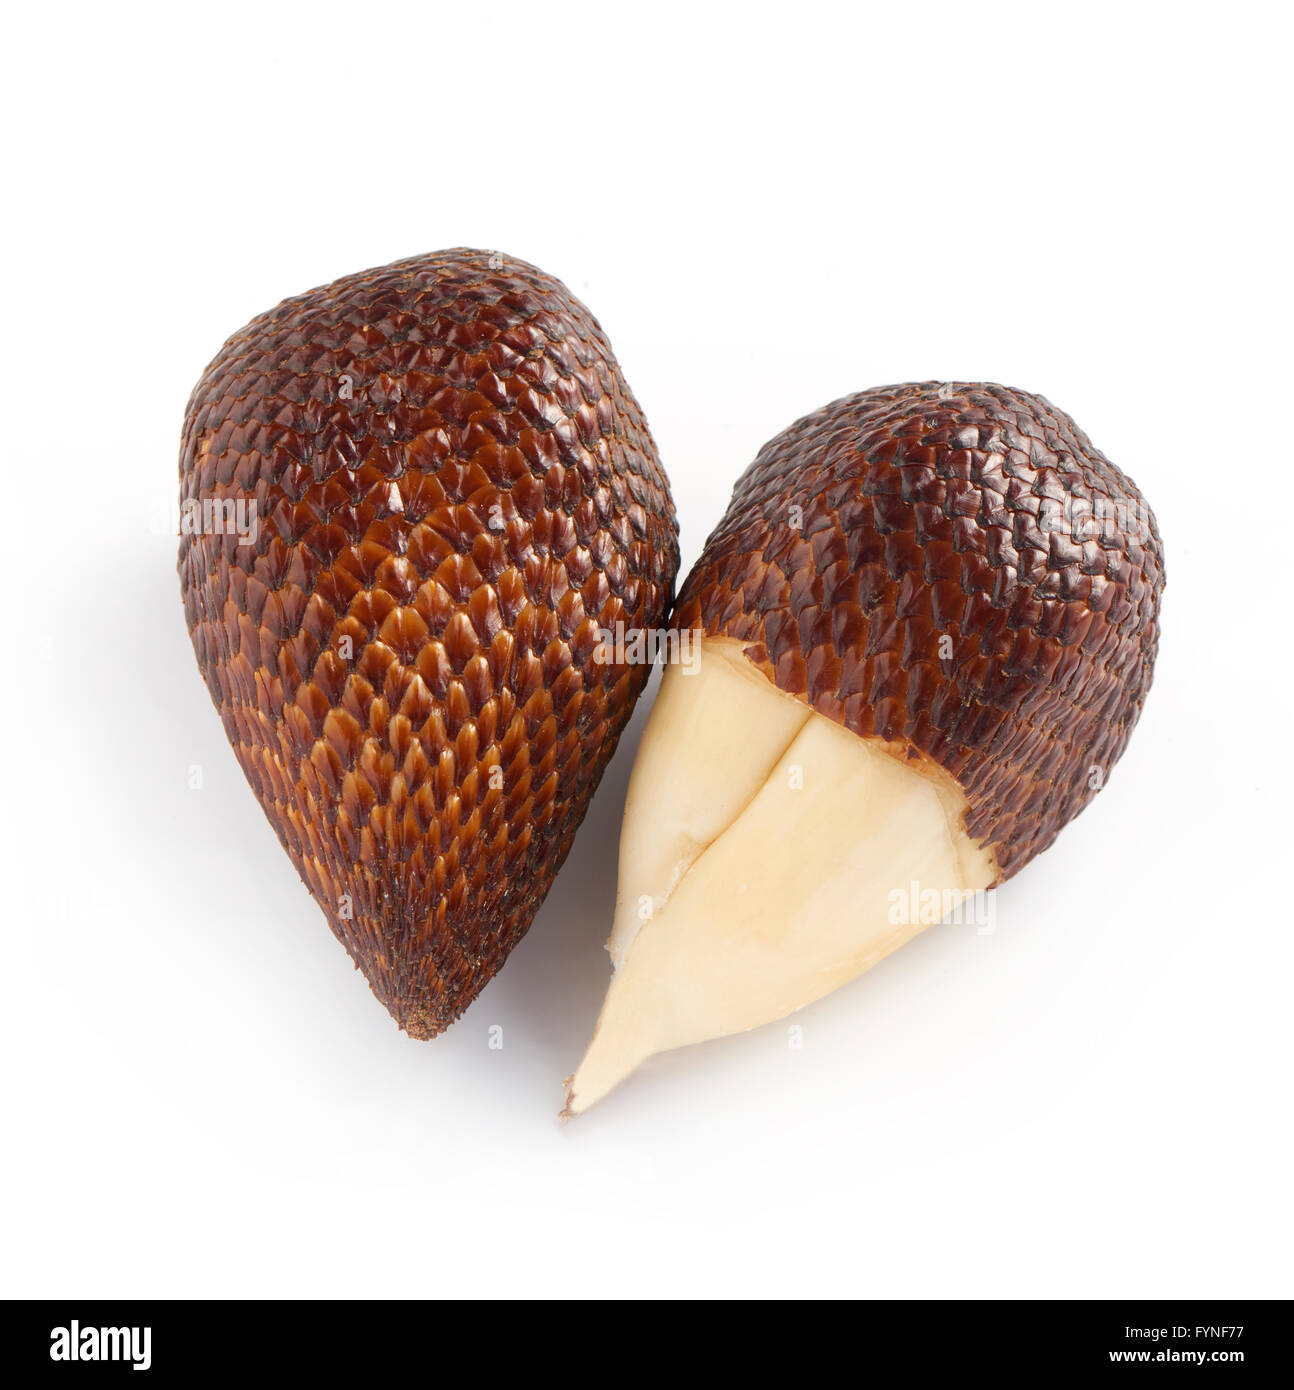 High Angle Still Life of Exotic Salak Palm Fruit on White Background - One Unpeeled Fruit with Brown Scaly Skin - Stock Image